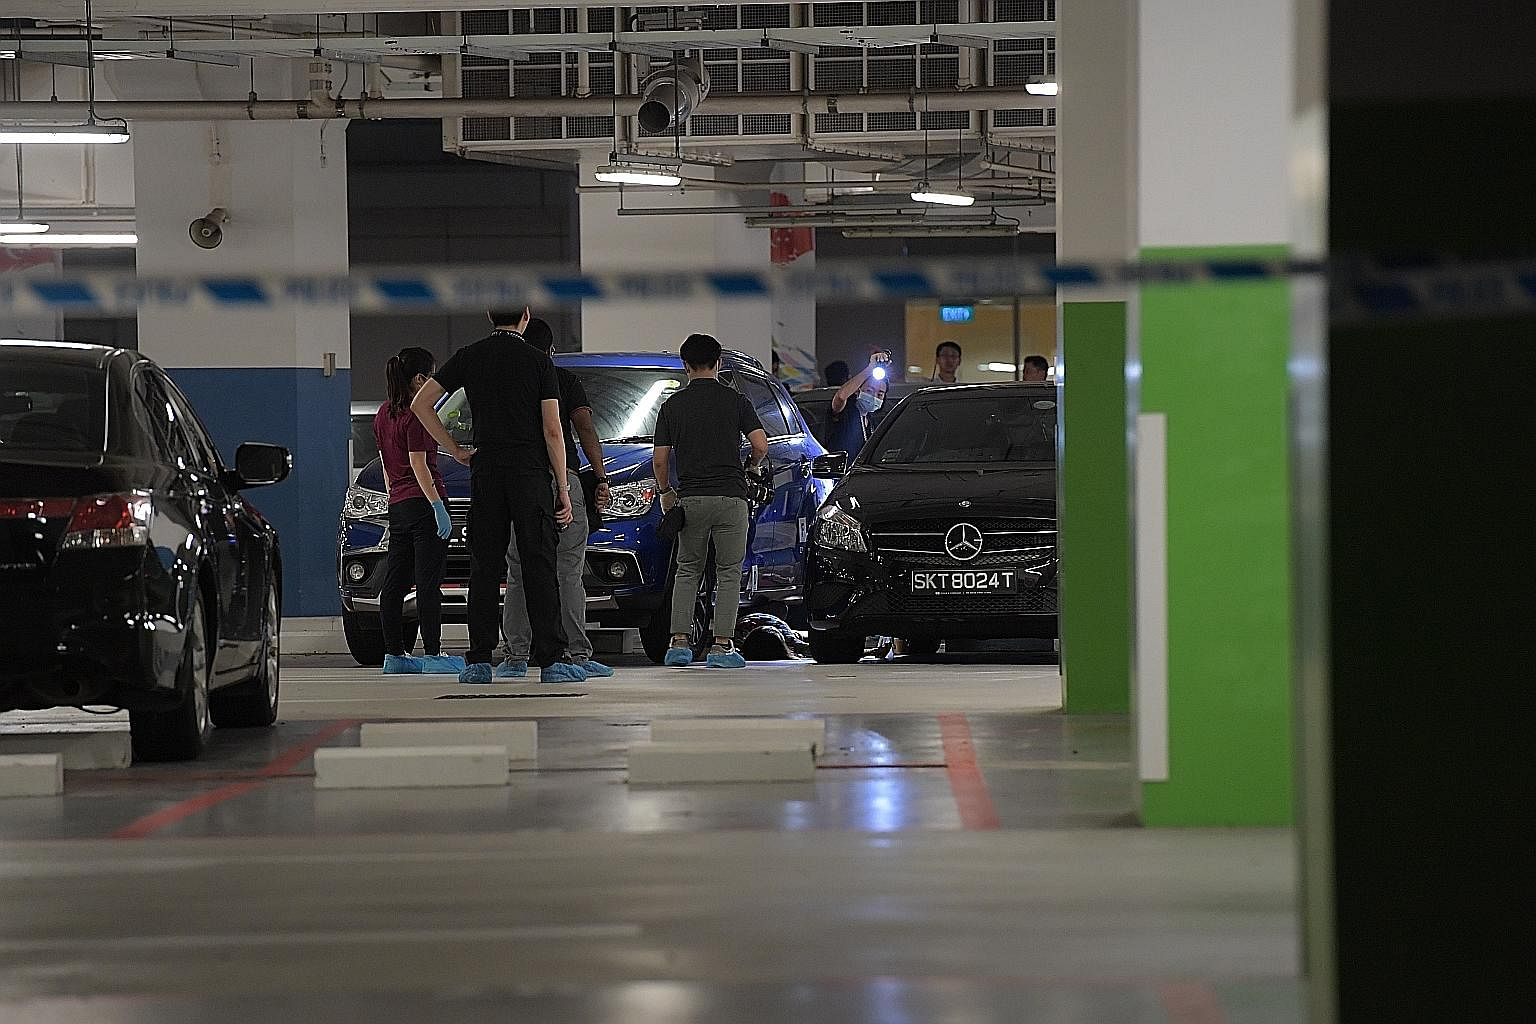 A woman believed to have been stabbed was found dead at the Institute of Technical Education (ITE) College Central campus in Ang Mo Kio yesterday evening. Police said they were alerted to an incident where a man allegedly stabbed the 56-year-old woma